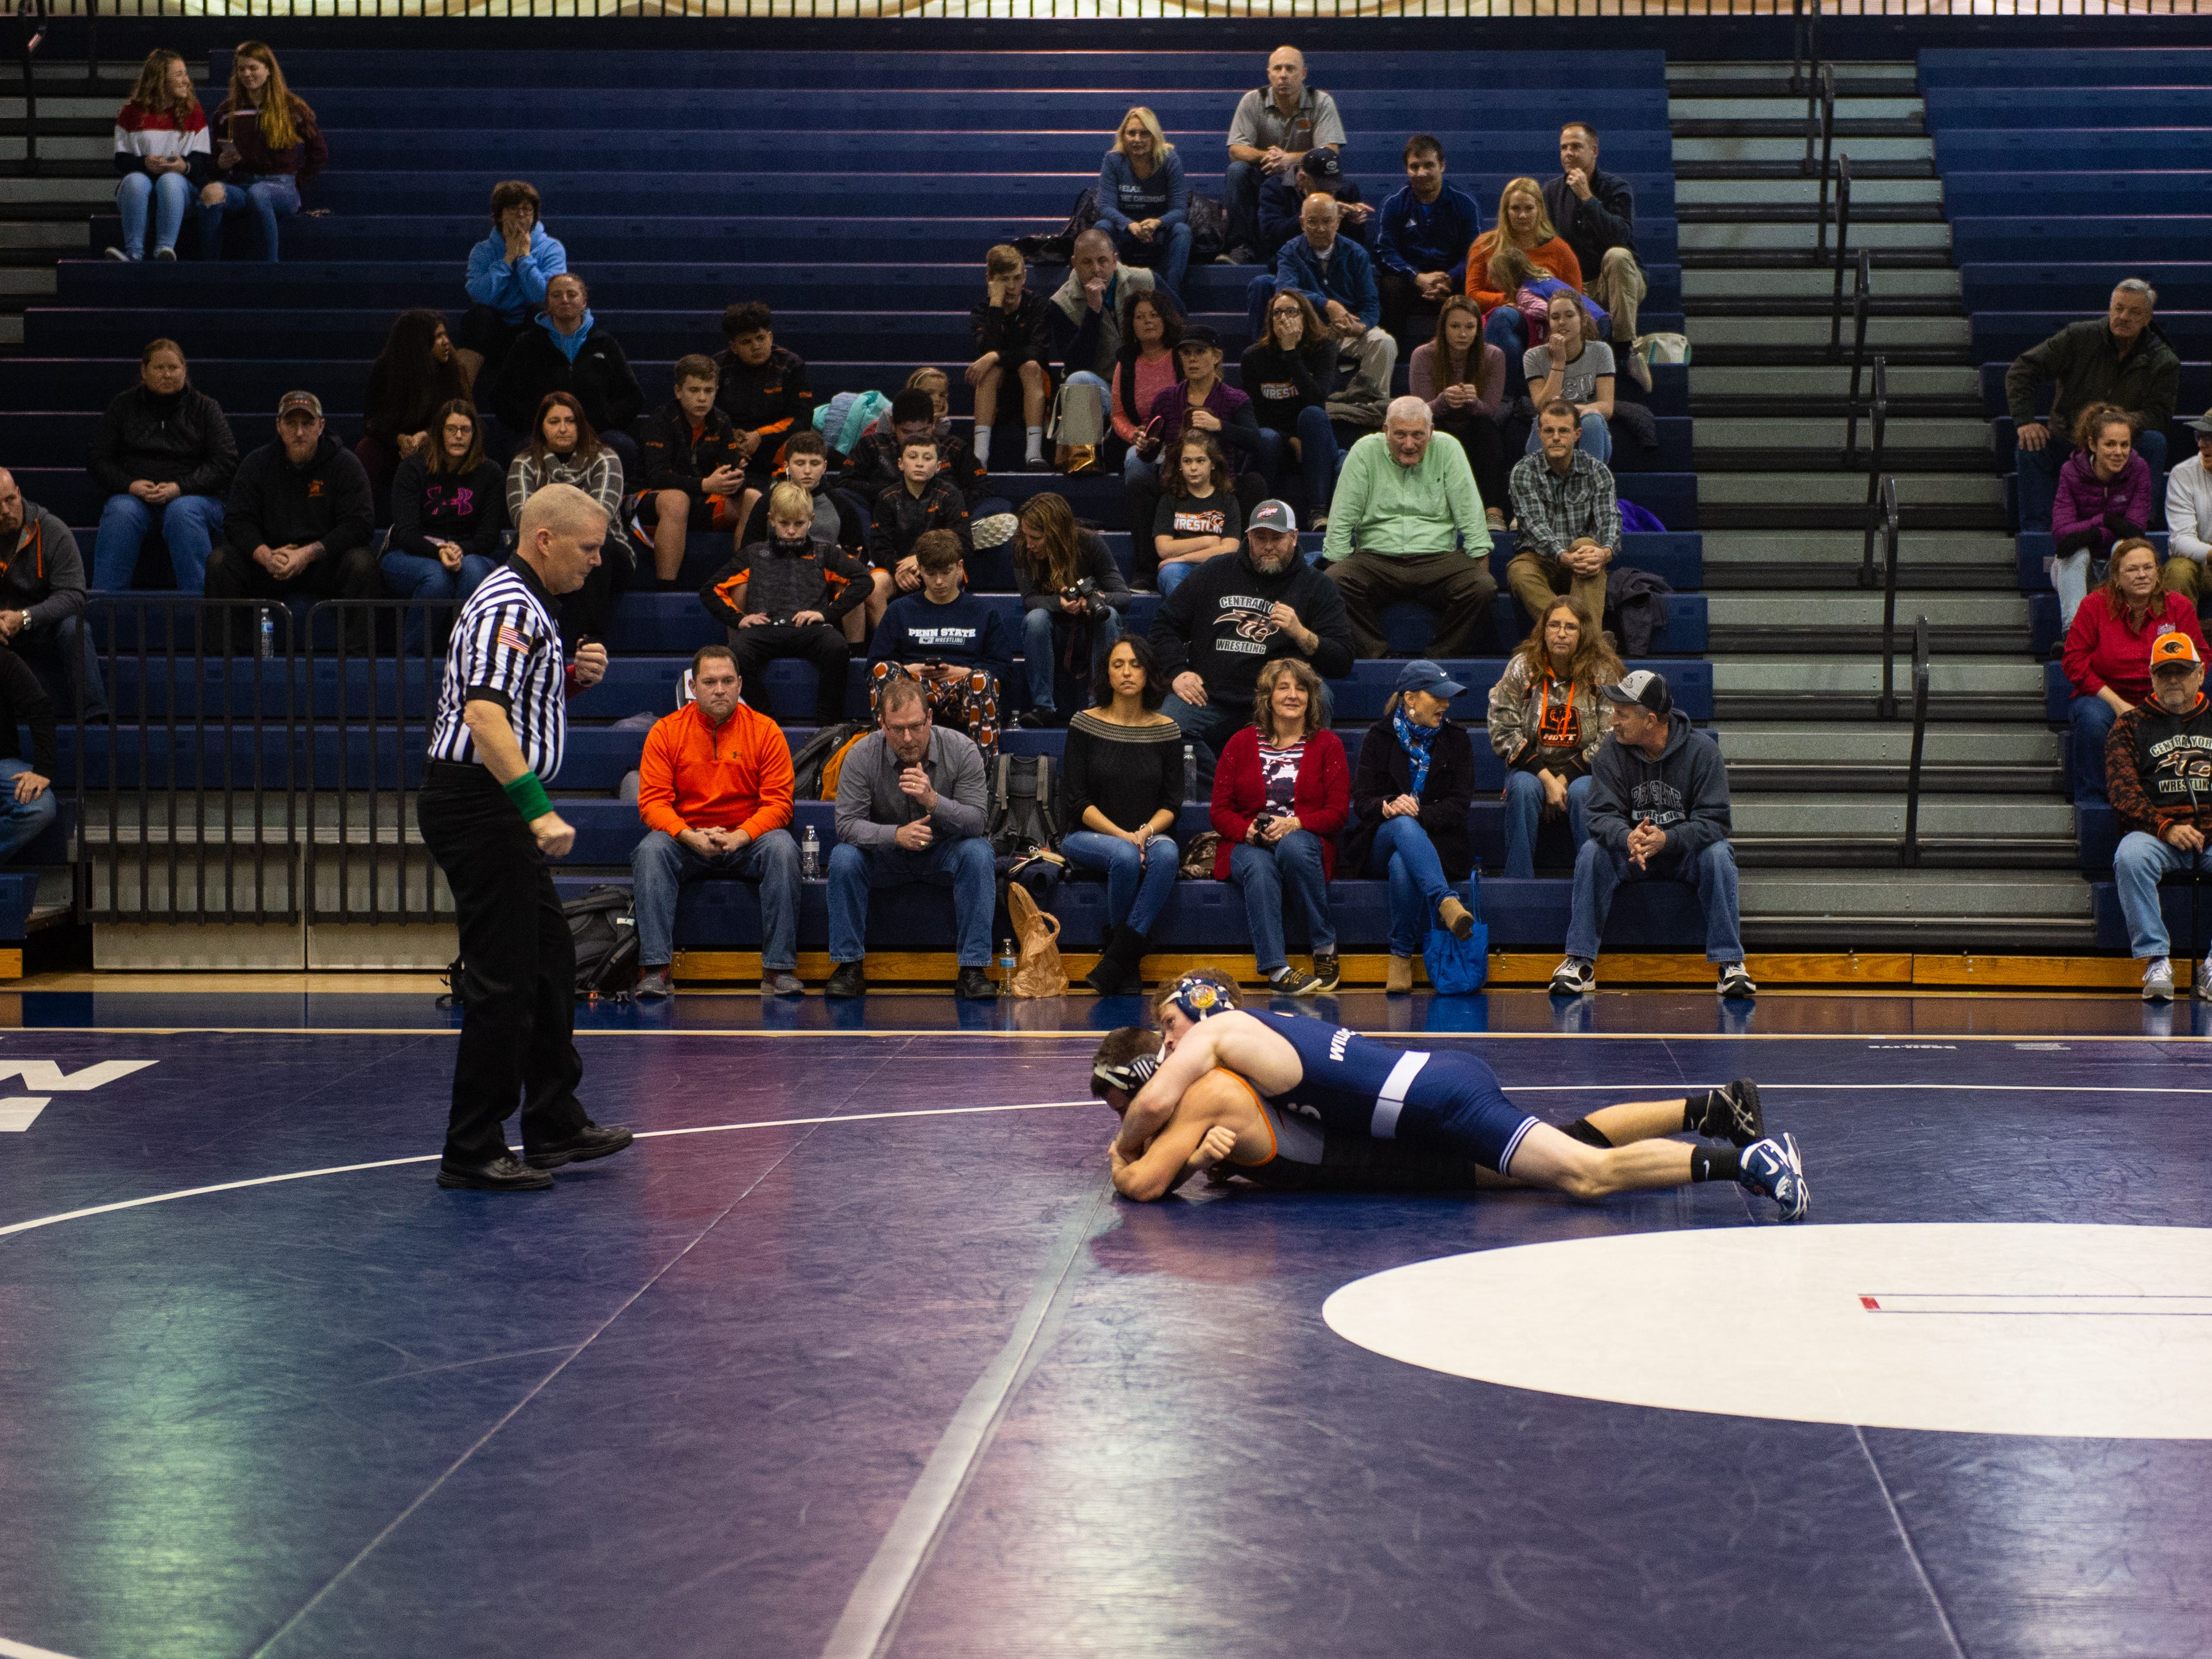 The crowd watches as the first wrestling match of the night commences, Thursday, January 3, 2019. The Dallastown Wildcats defeated the Central York Panthers 62-18.